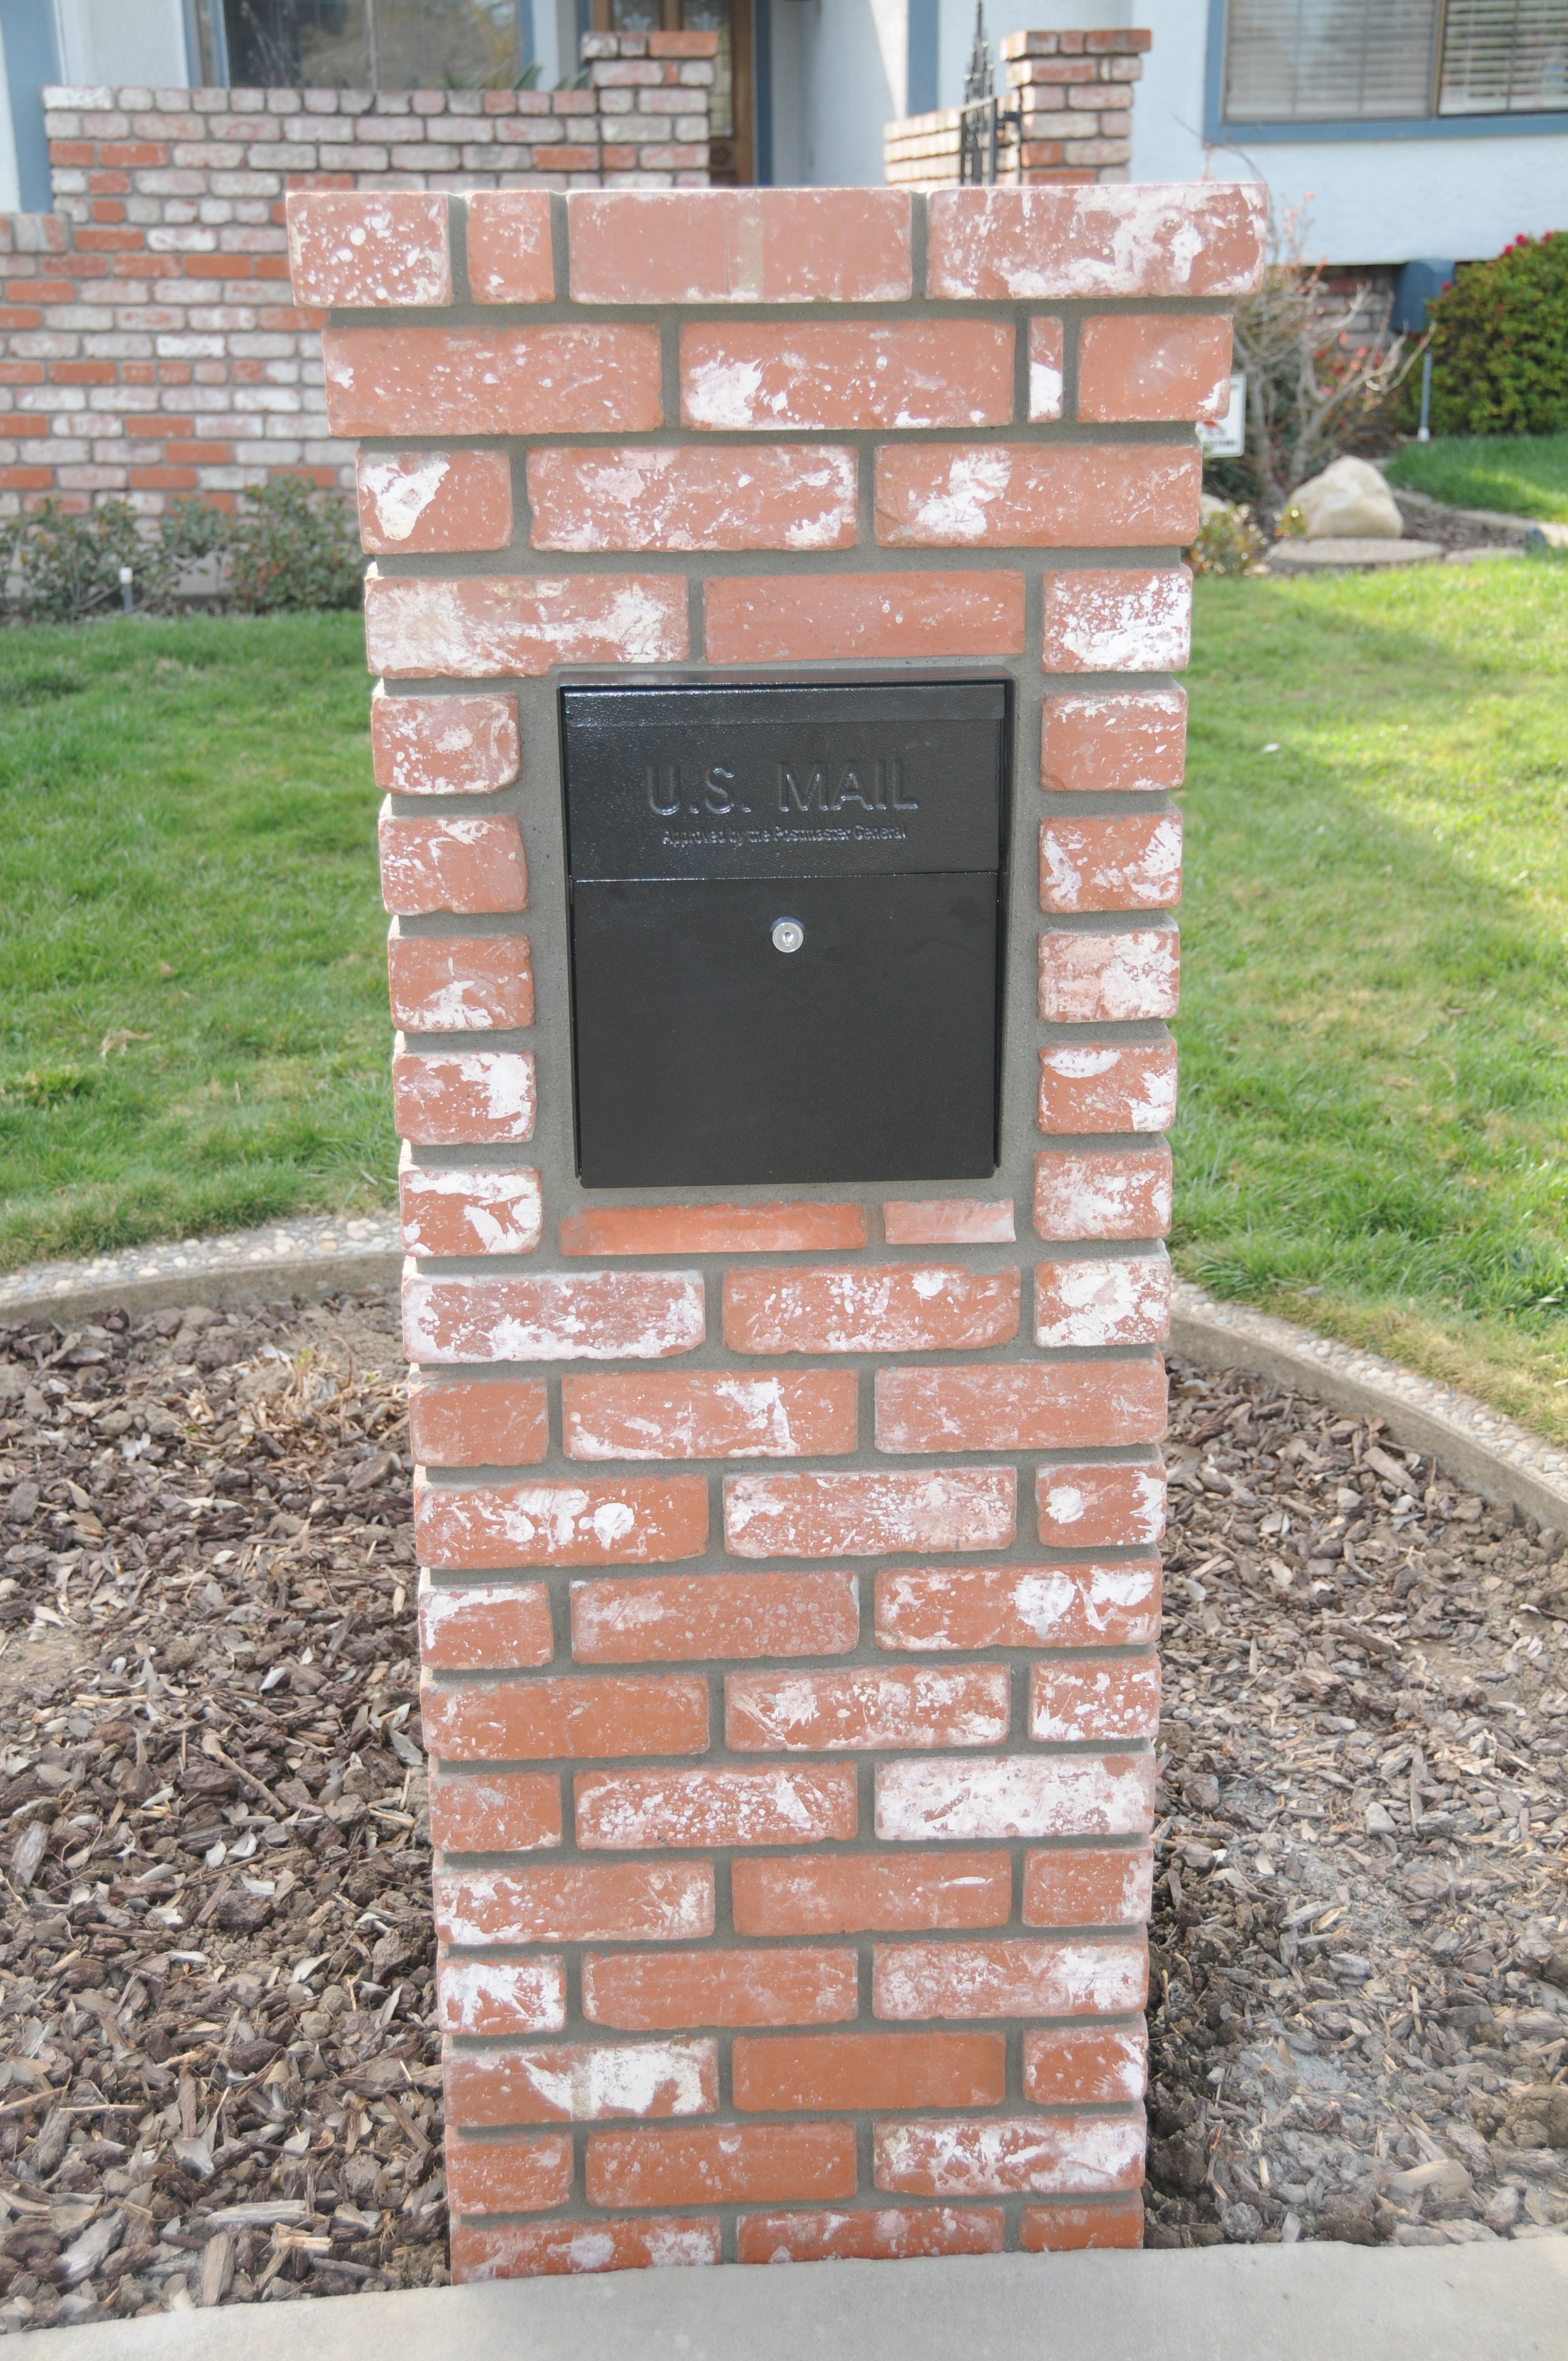 ... recently installed his Mail Boss security mailbox in a brick column